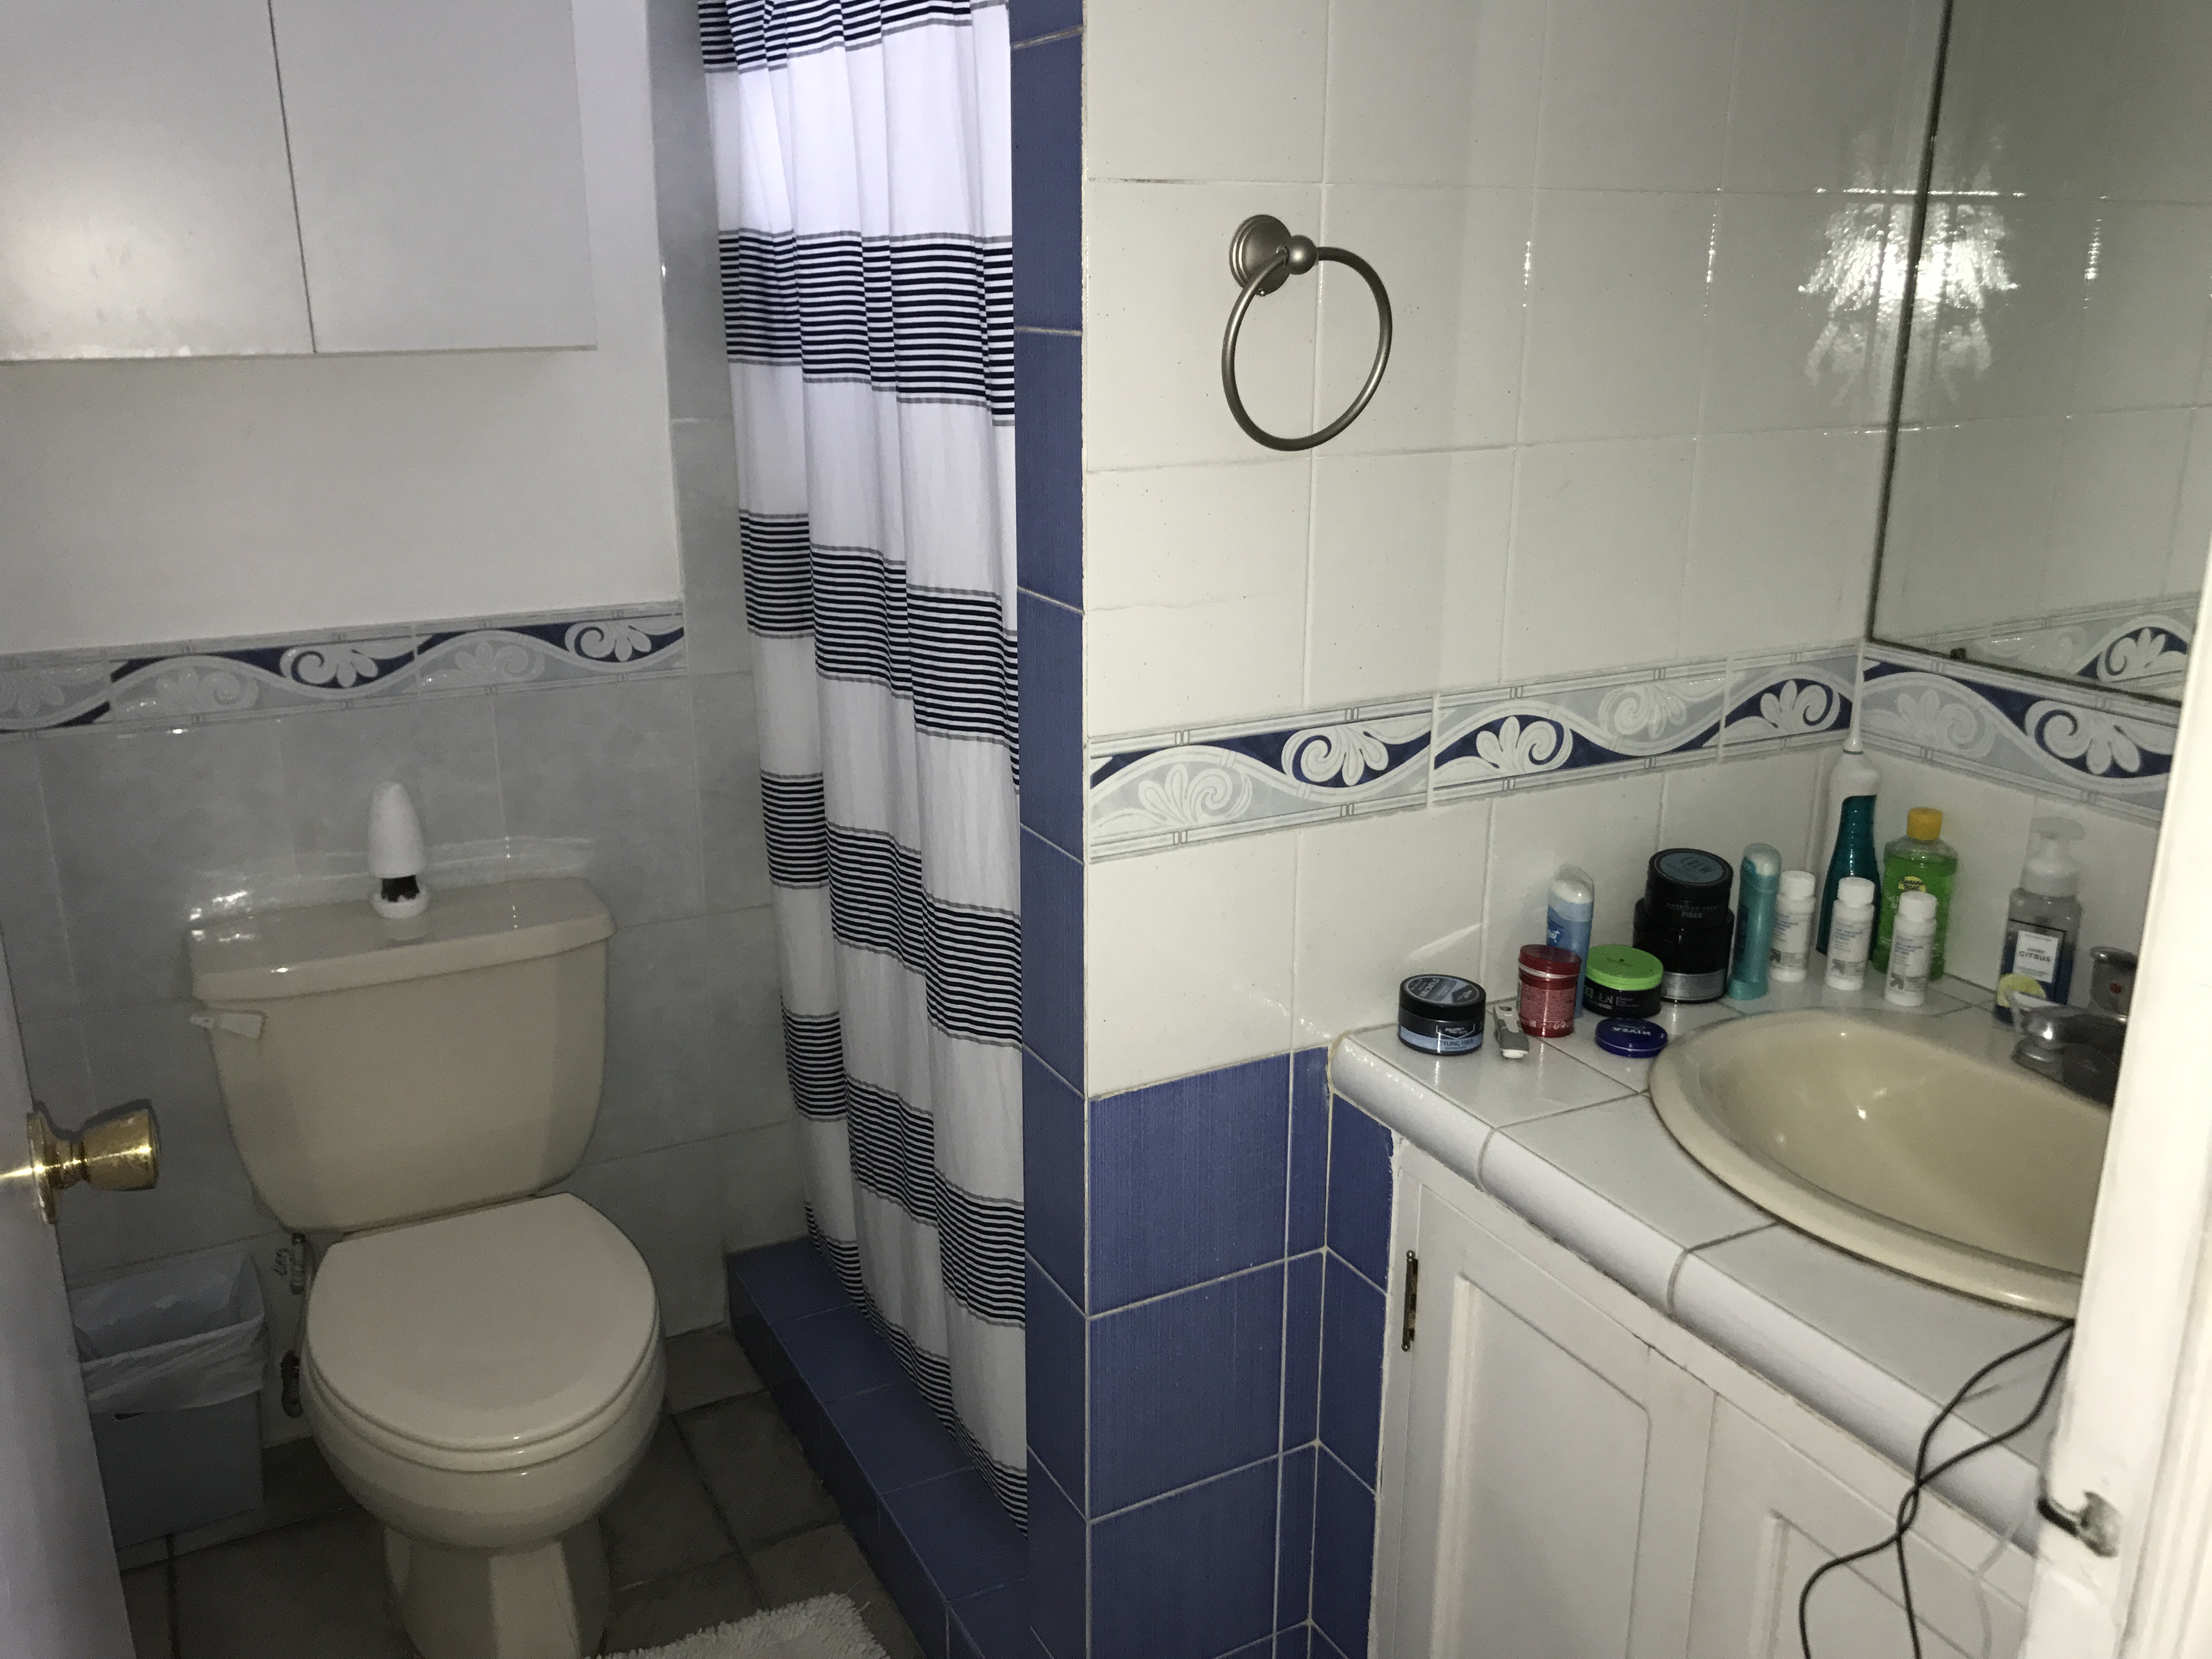 Casa_de_Venta_parte_media_escalon_baño_jr_2